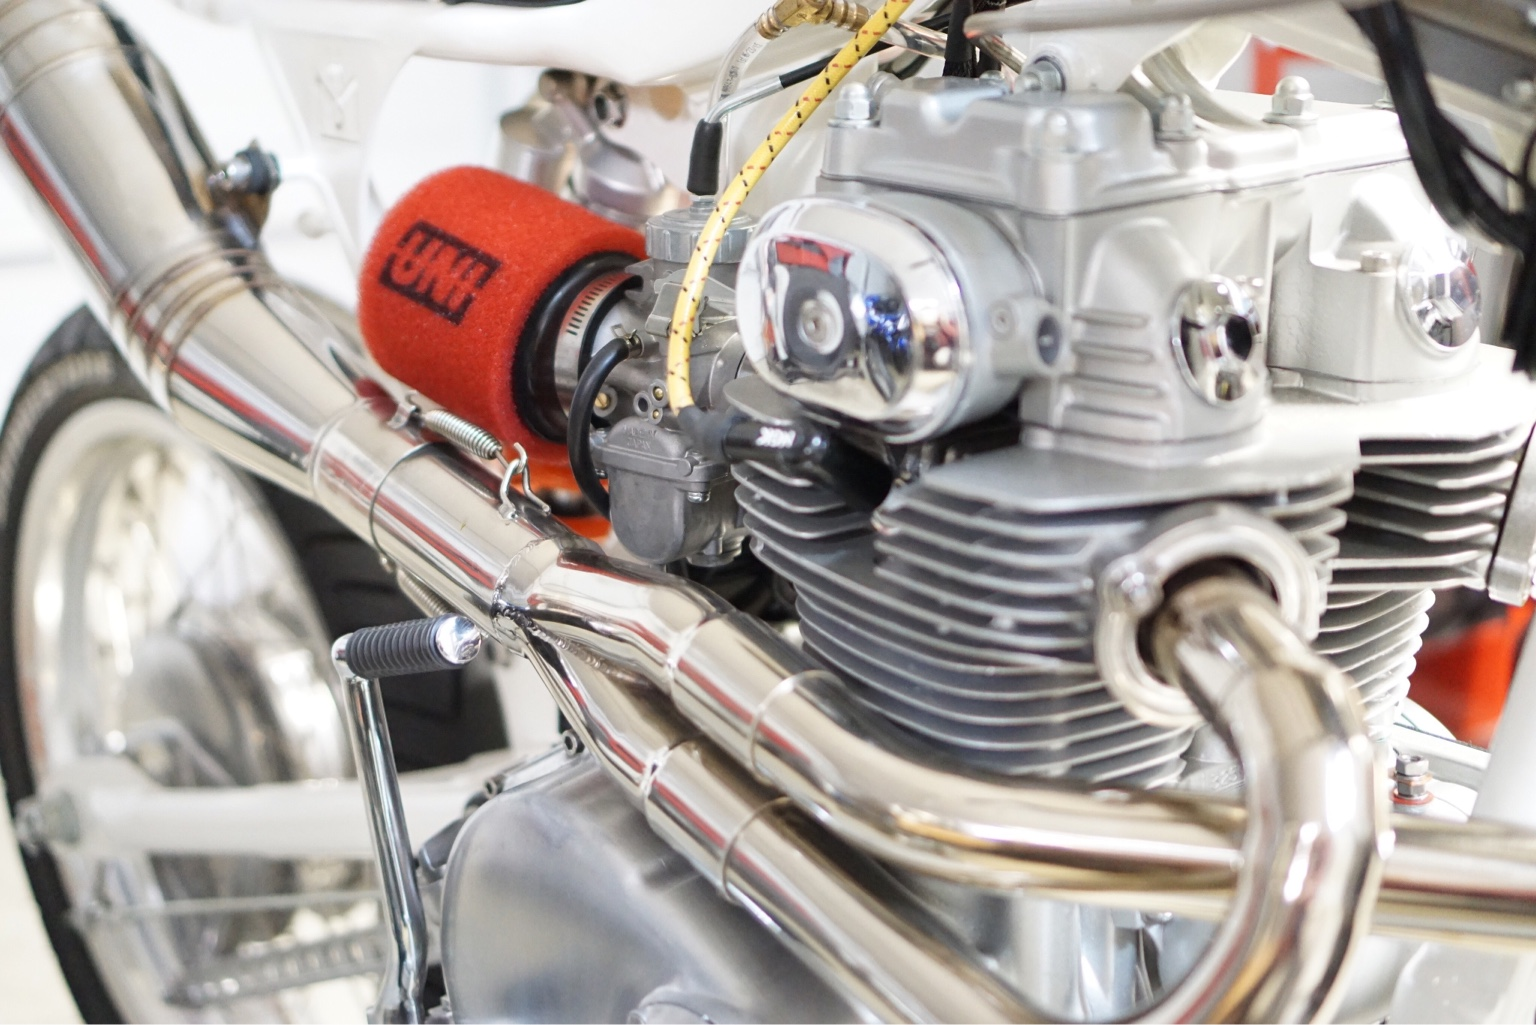 CB350 Popping on deacceleration